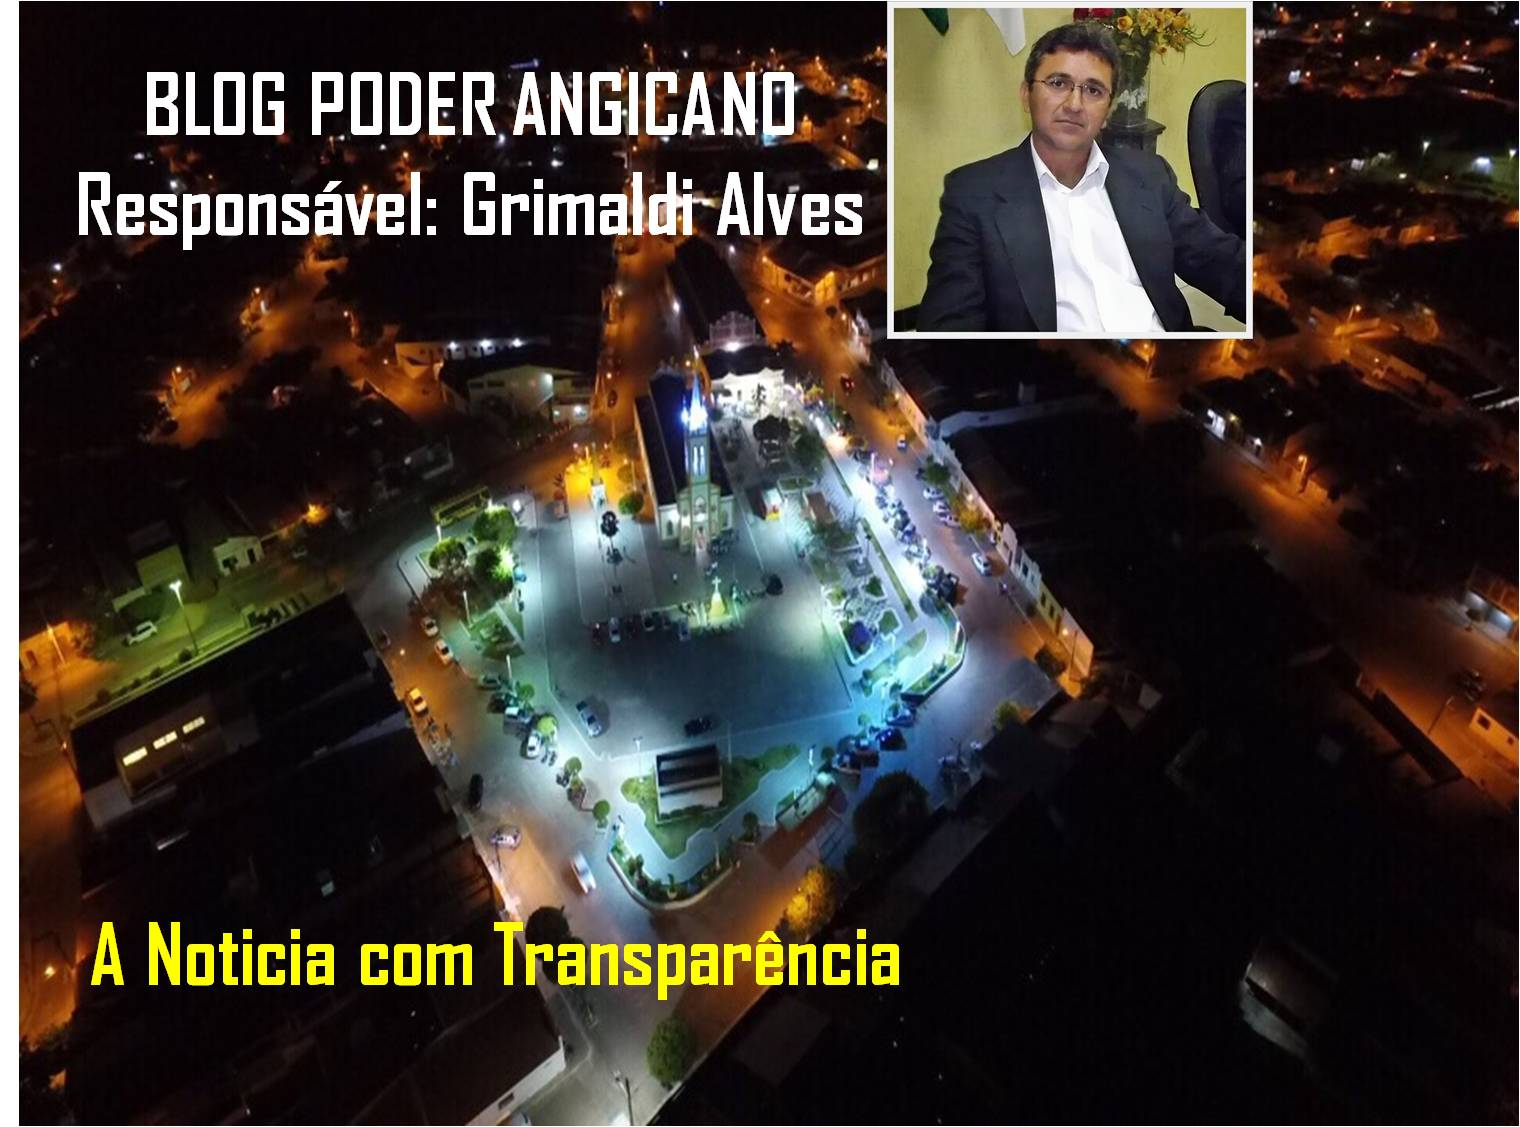 BLOG PODER ANGICANO